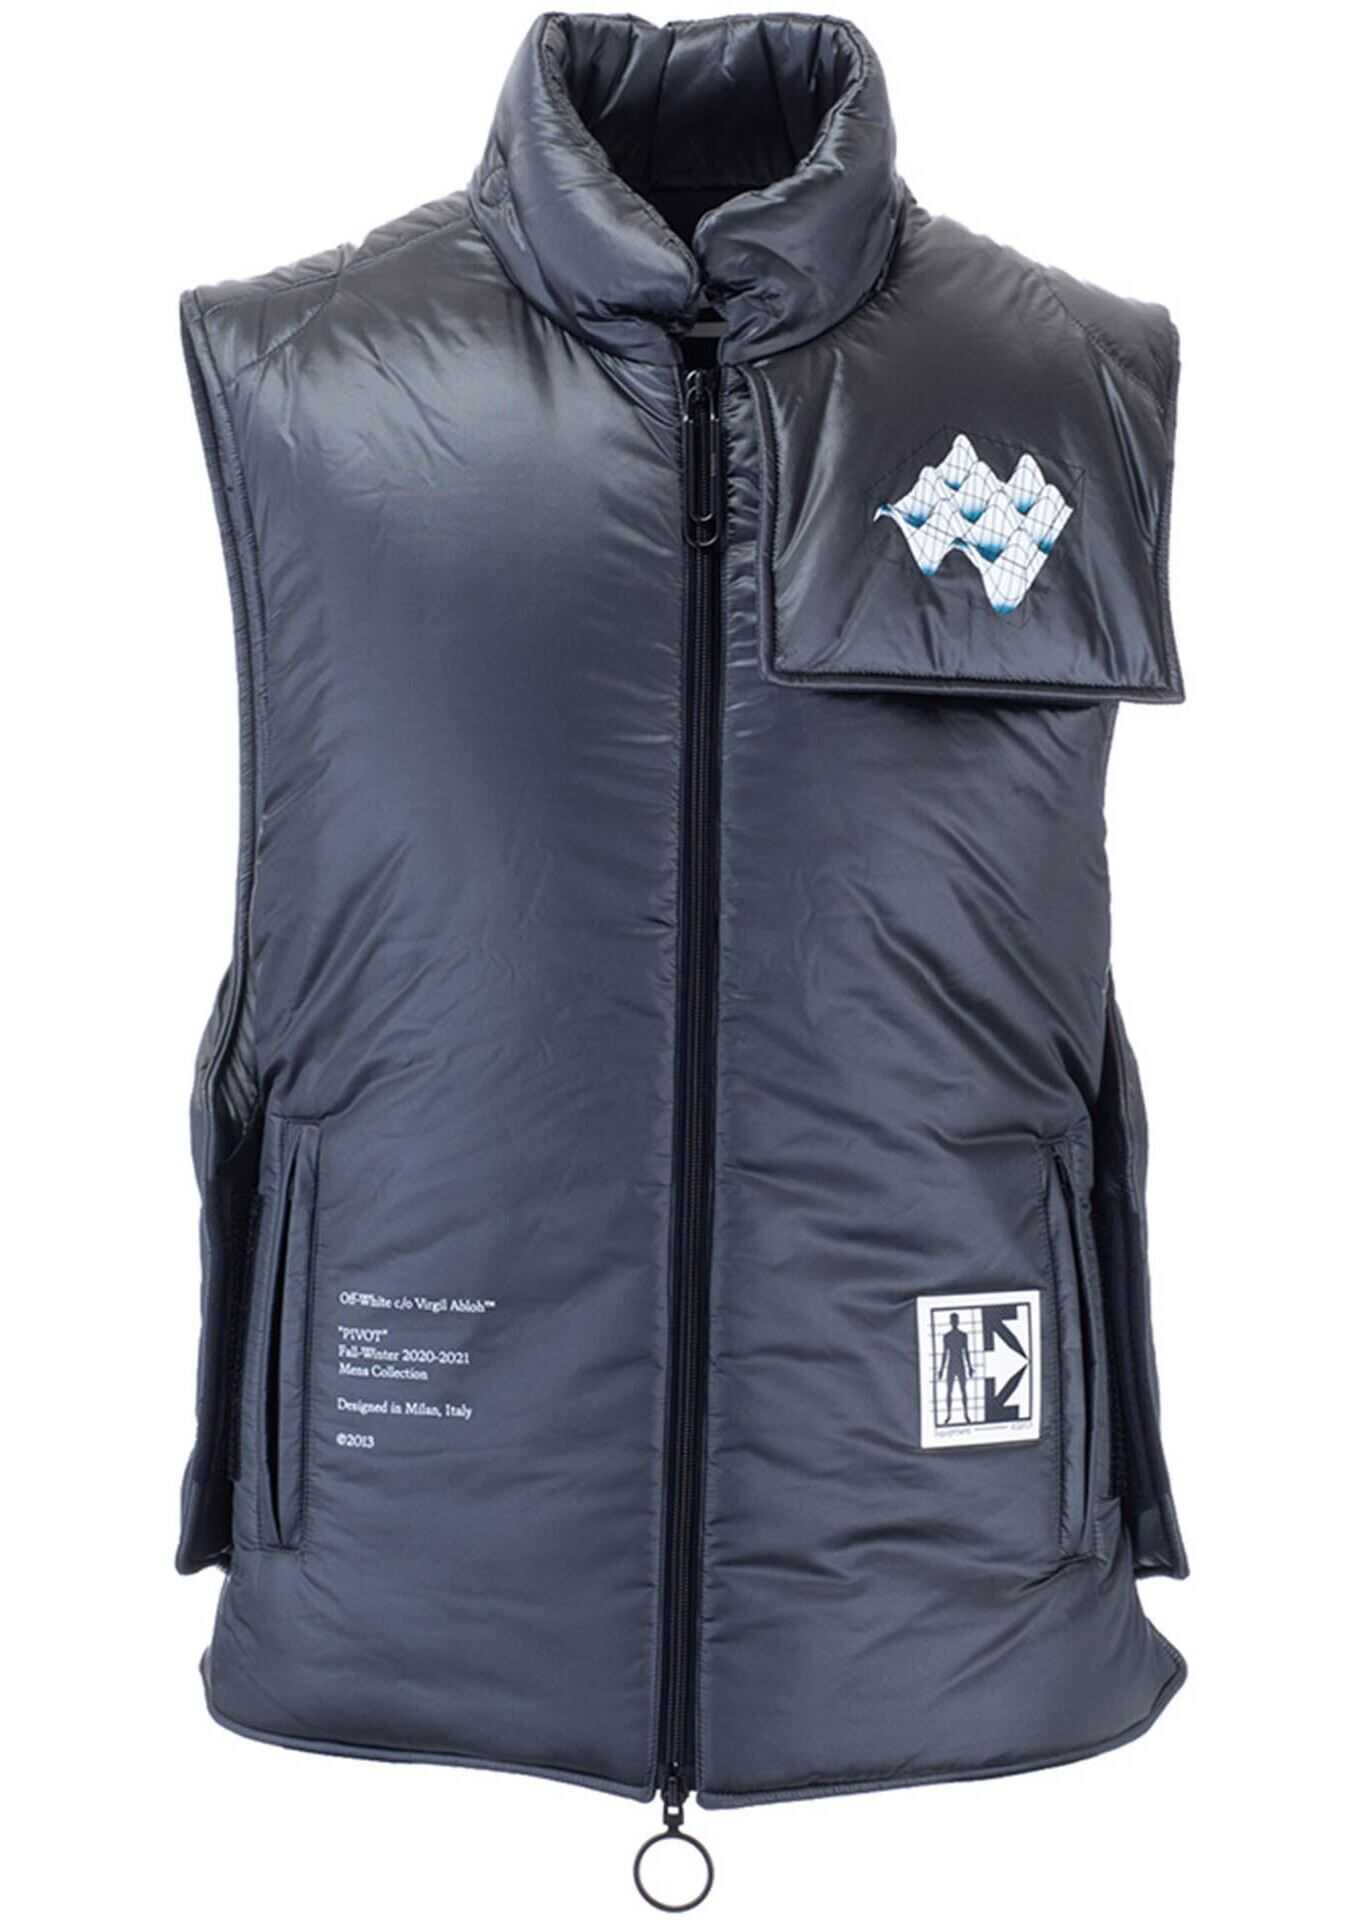 Off-White Arrows Padded Vest In Grey Grey imagine